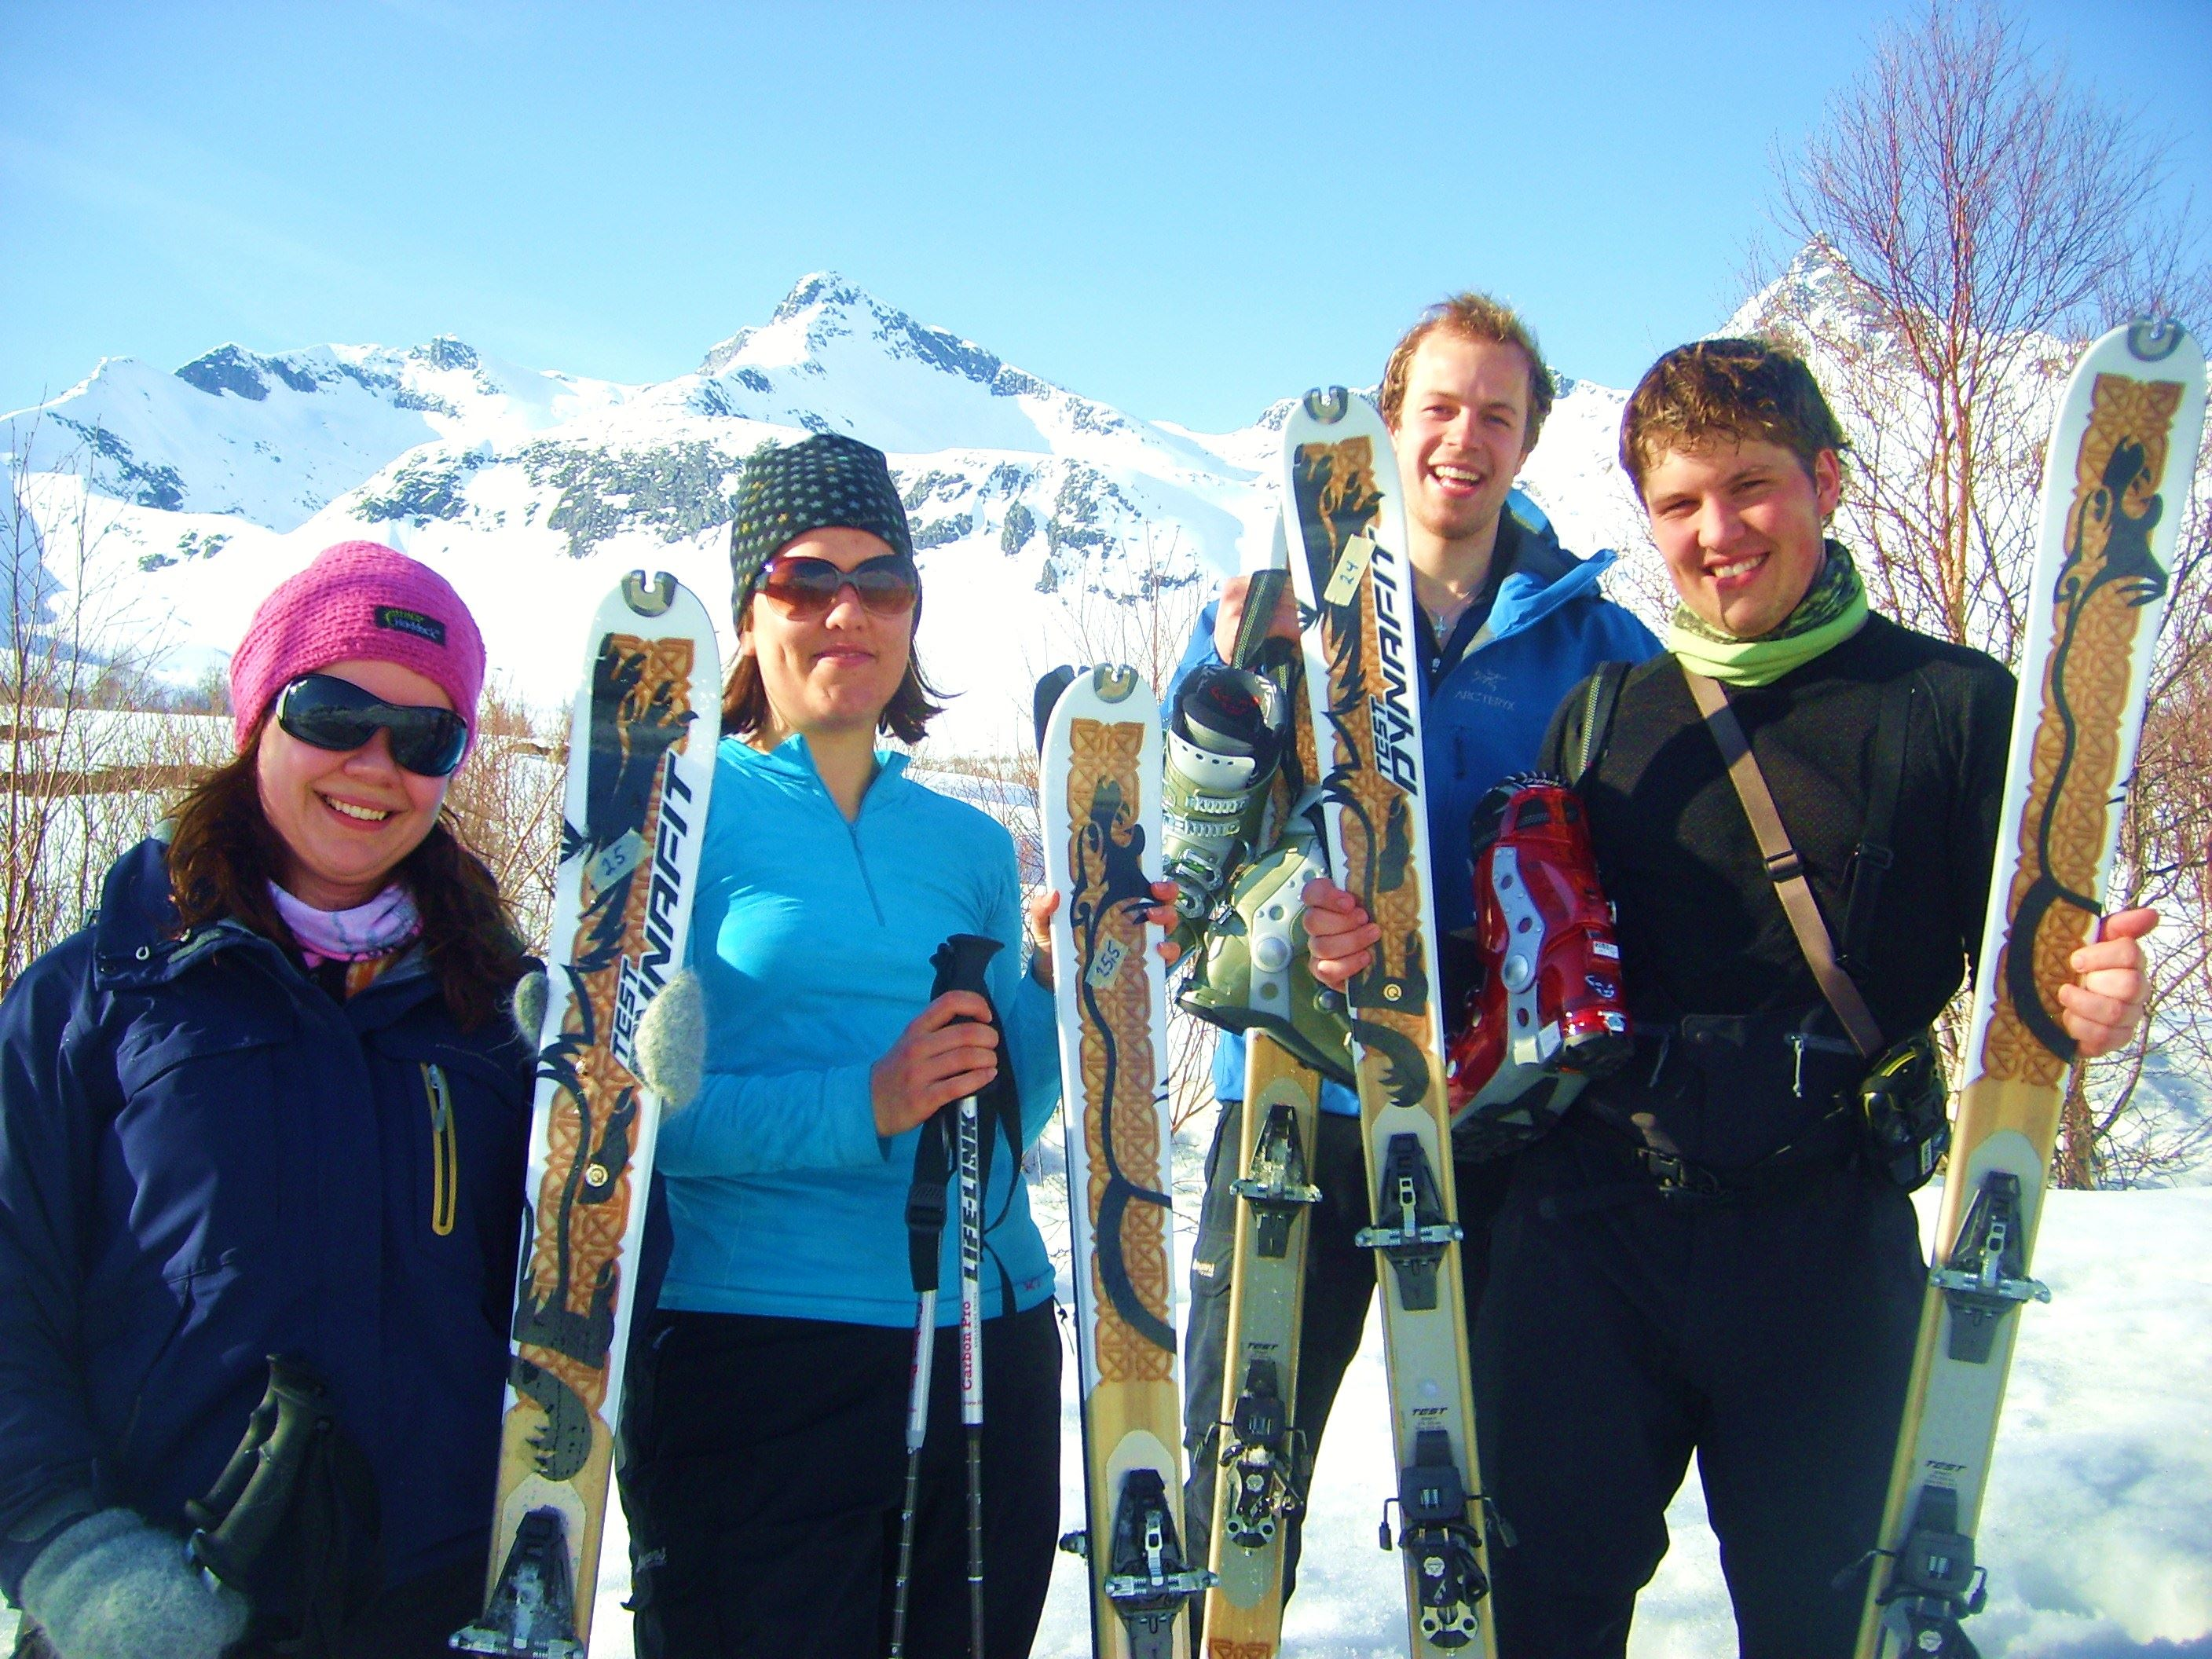 Introduction to Ski Touring – guided trip for beginners